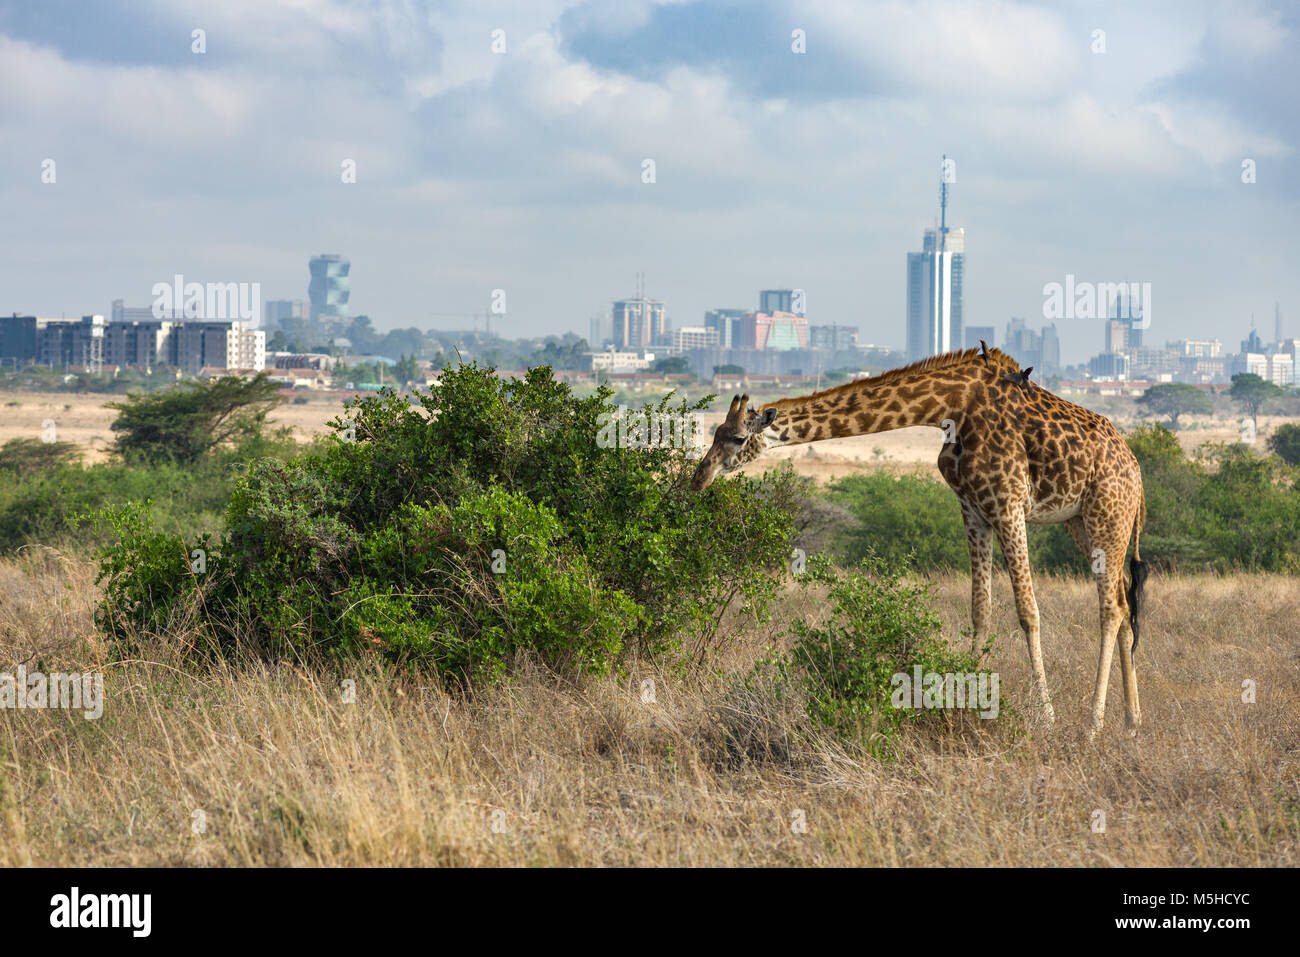 A single Masai giraffe (Giraffa camelopardalis tippelskirchi) feeding on a large bush with the Nairobi city skyline - Stock Image